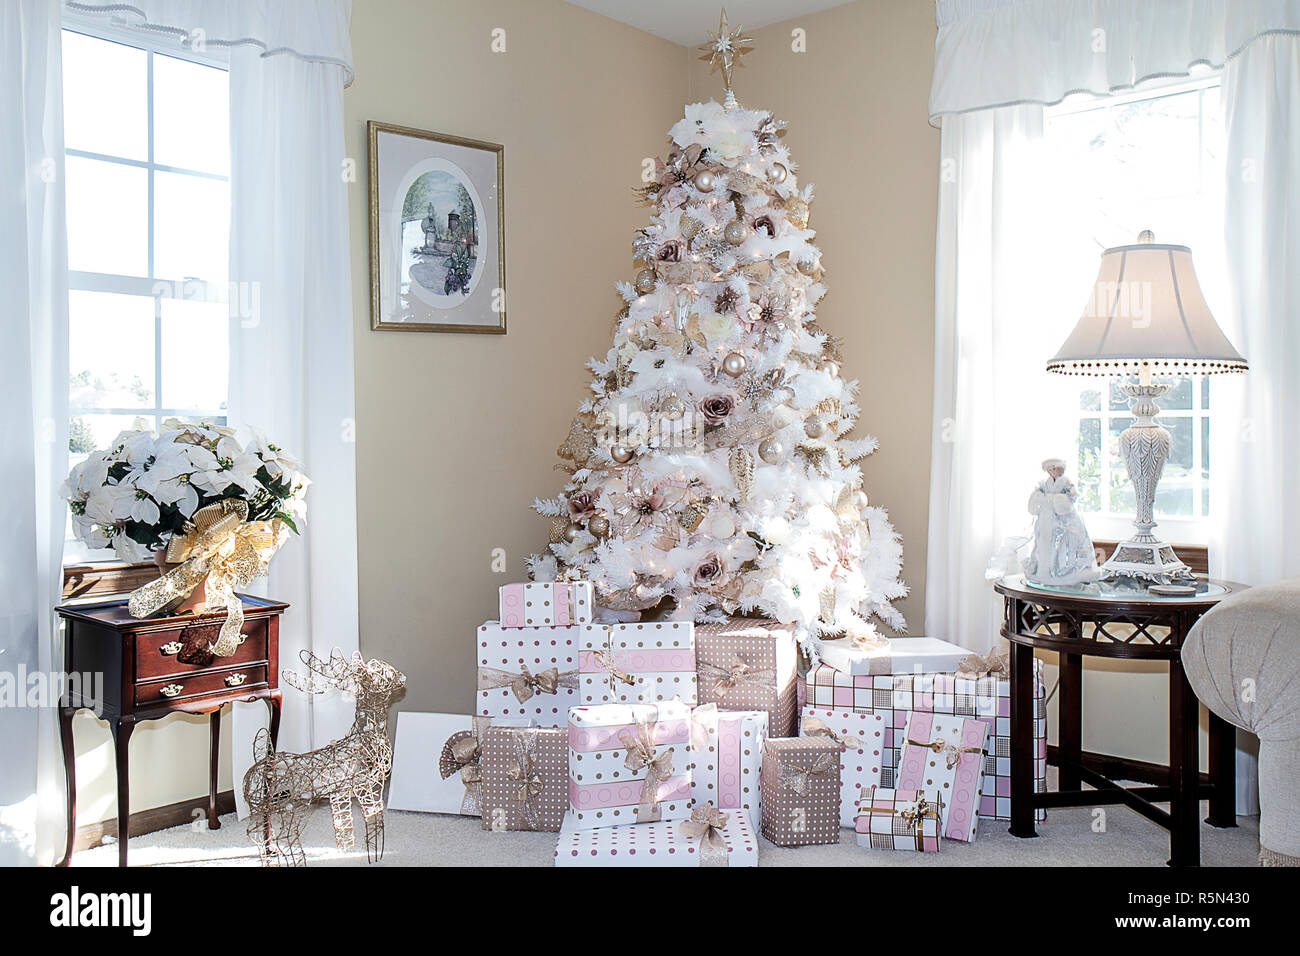 White Dreamy Christmas Tree In Living Room Of Home Decorated In